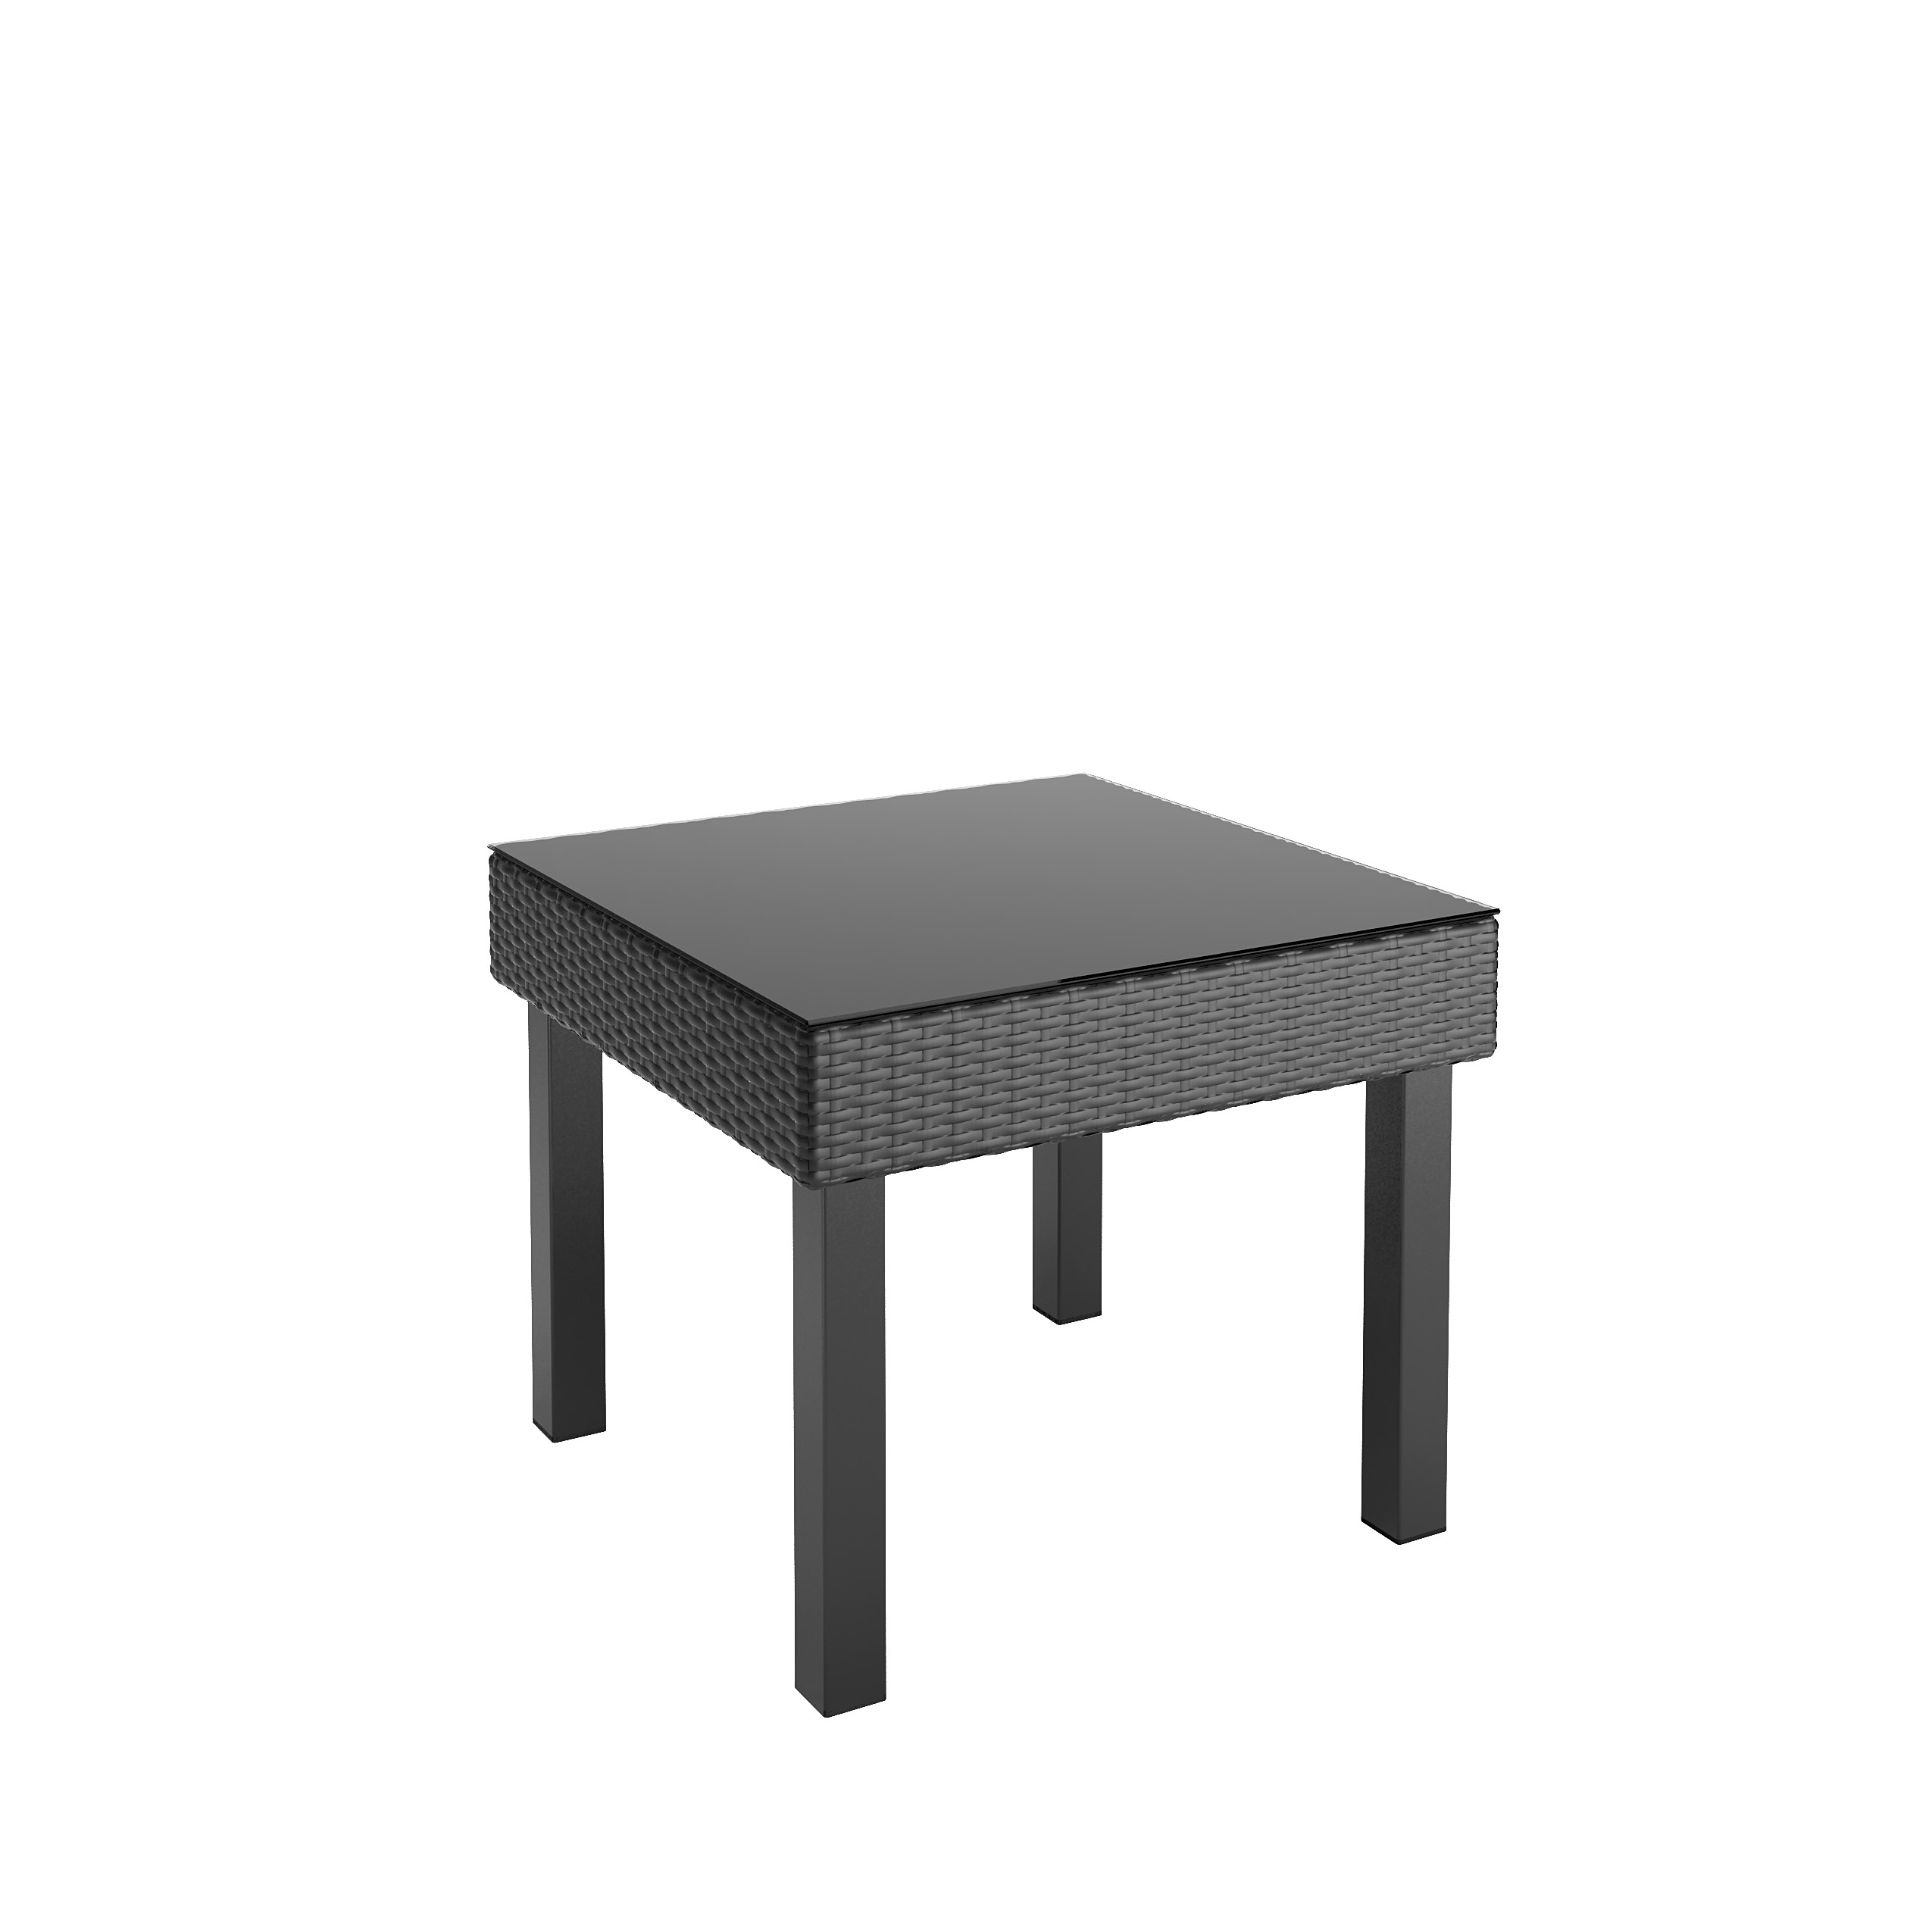 likable unique patio accent tables umbrella home restaurant table sets cool set clearance ideas conversation side living for and depot hex modern wicker chairs dining umbrell